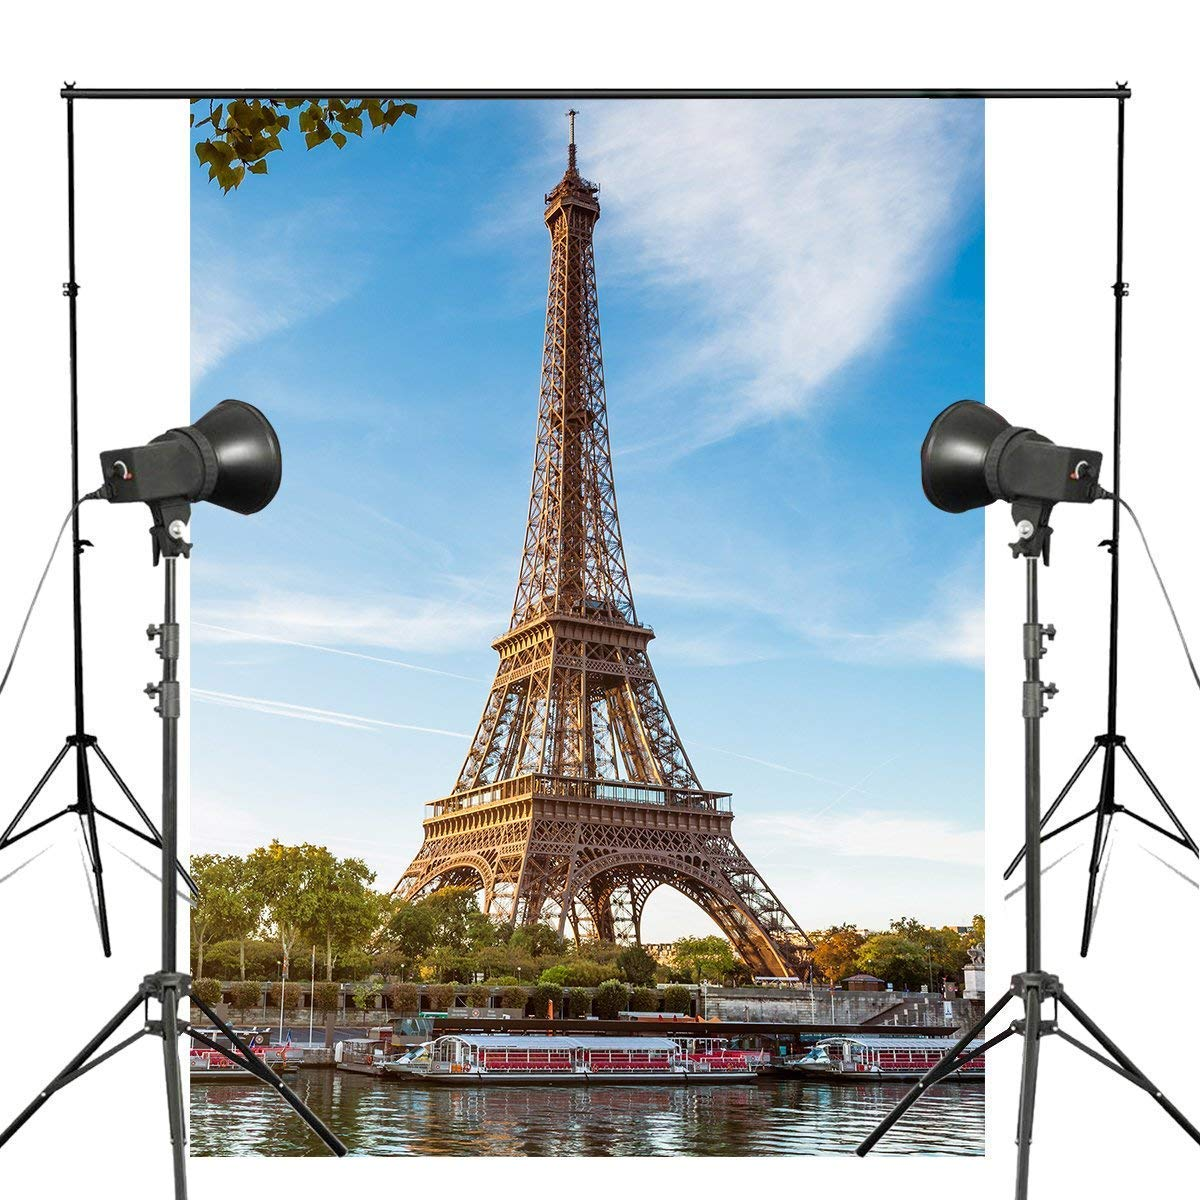 ERTIANANG 150x220cm Paris Eiffel Tower Photography Background Blue Sky Ship Architectural Landscape Backdrop Studio Photography Backdrop